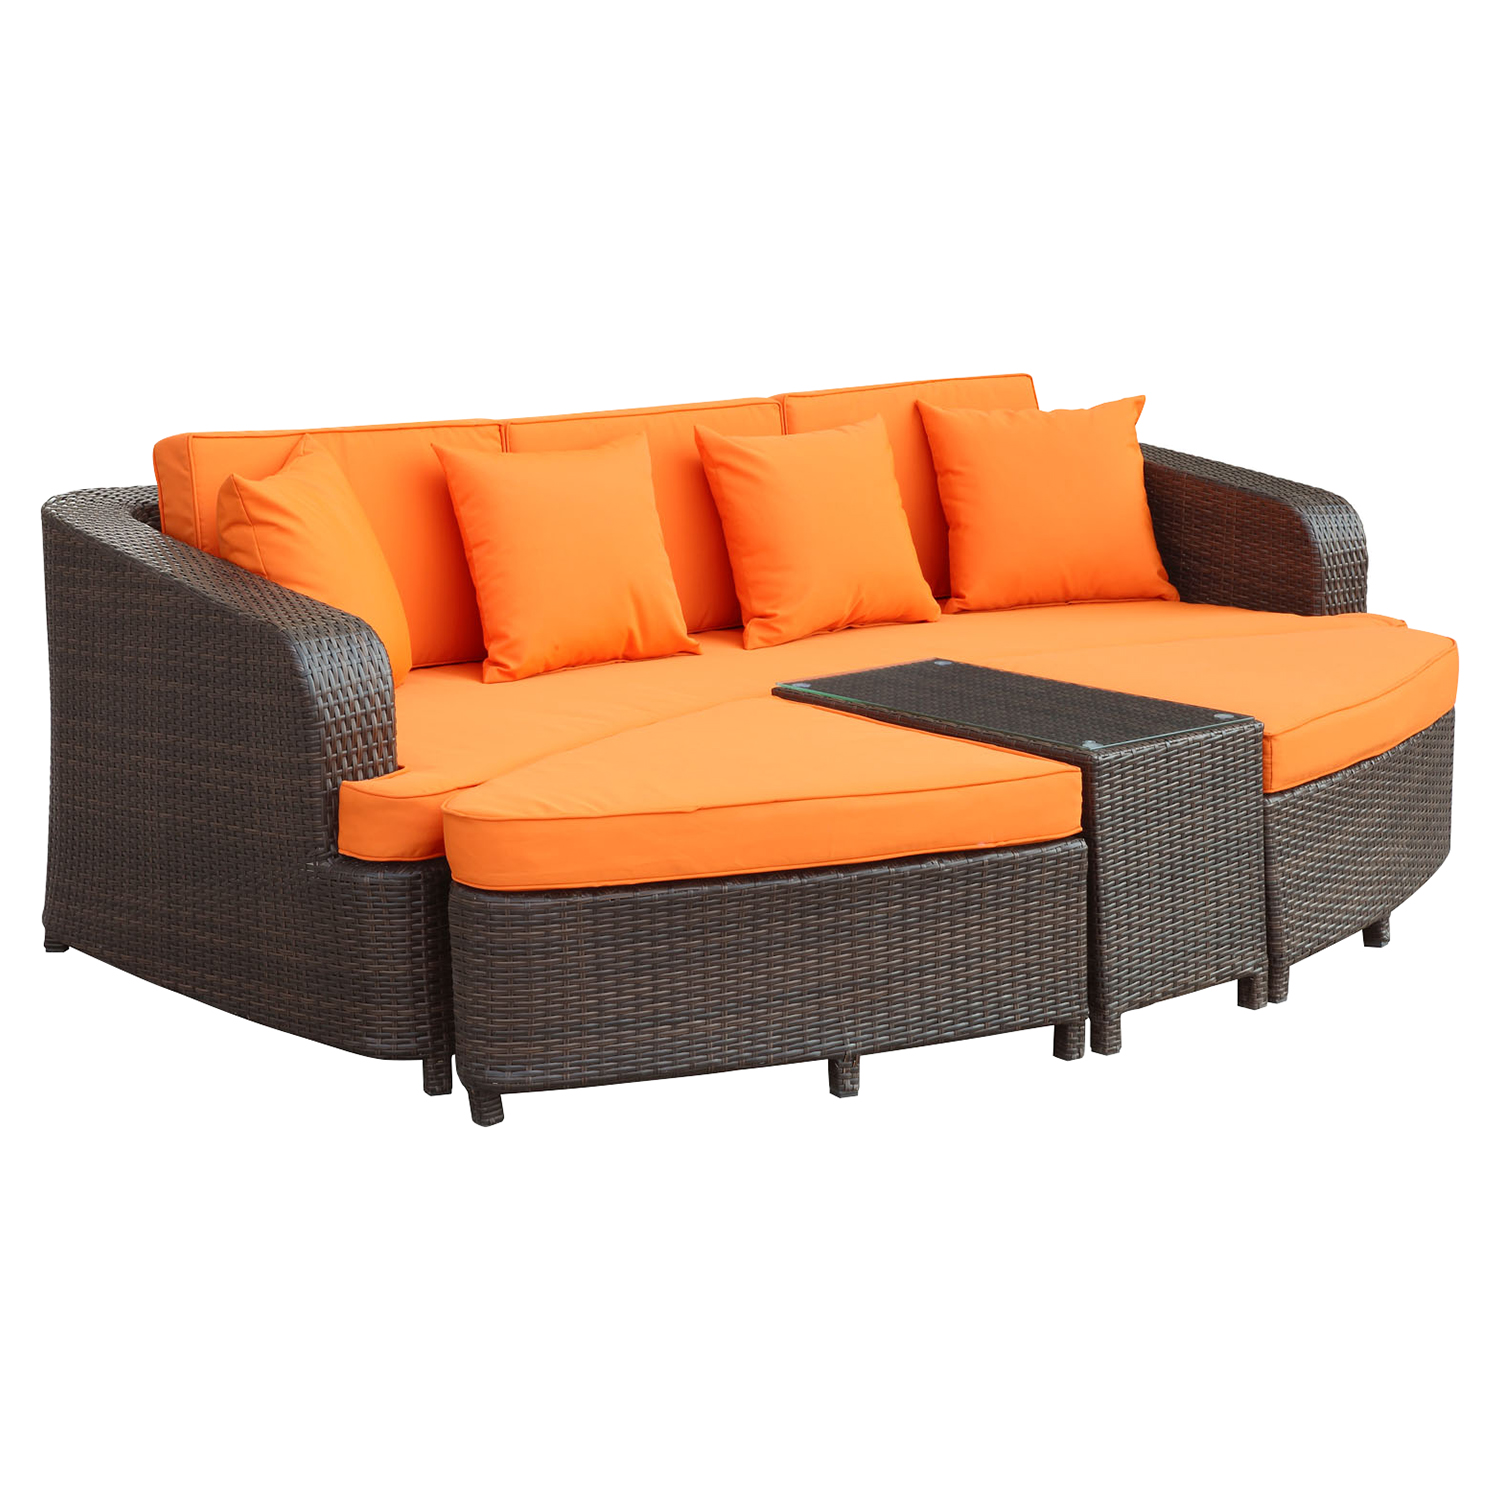 Monterey 4 Pieces Outdoor Patio Sofa Set - Brown, Orange - EEI-992-BRN-ORA-SET